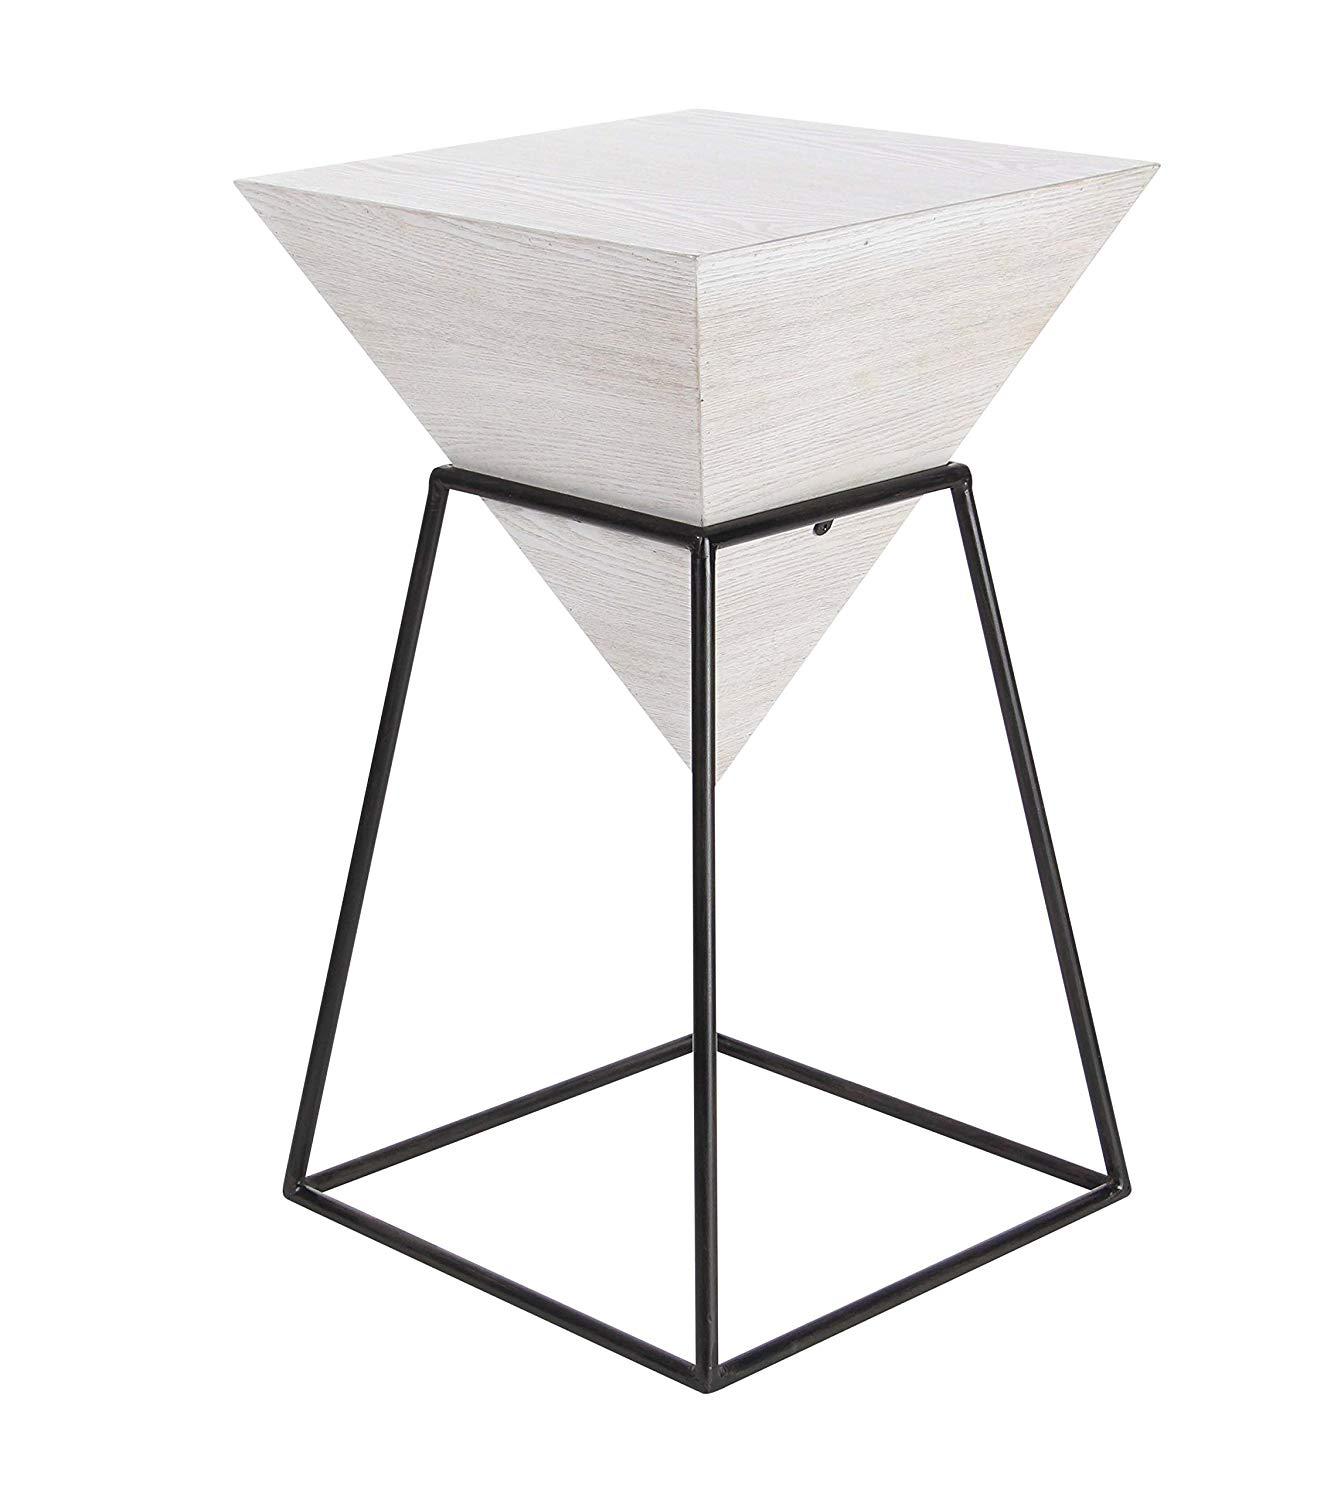 deco wood and metal square accent table quatrefoil gray black kitchen dining nate berkus side acrylic kids furniture stacking end tables stained glass bedroom chairs antique green